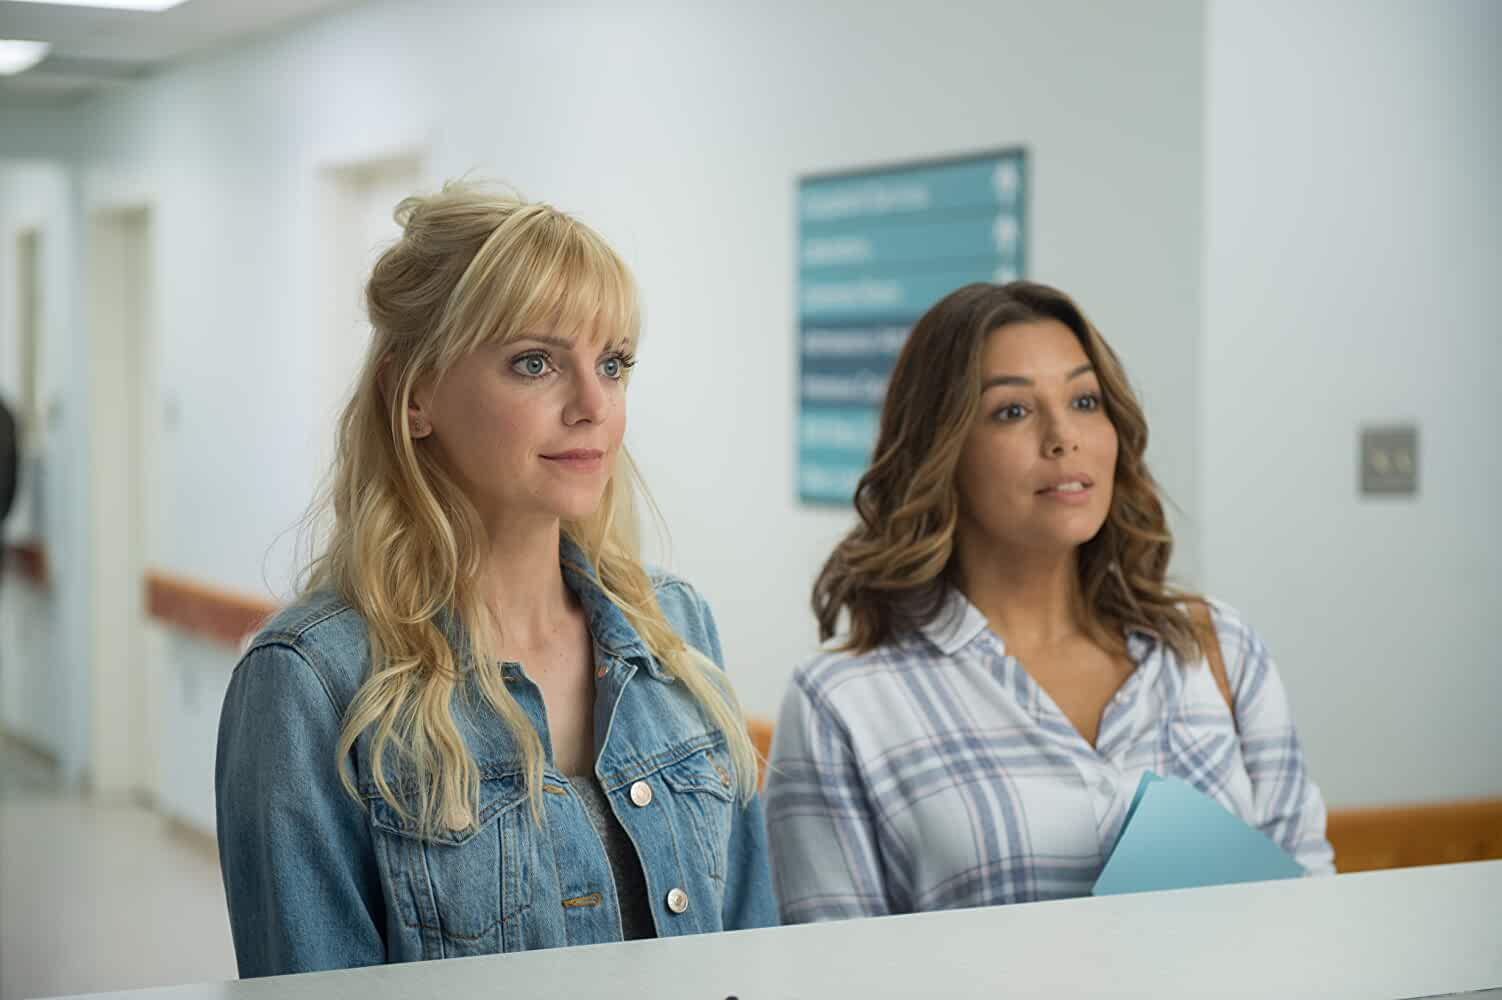 Anna Faris and Eva Longoria in Overboard (2018)